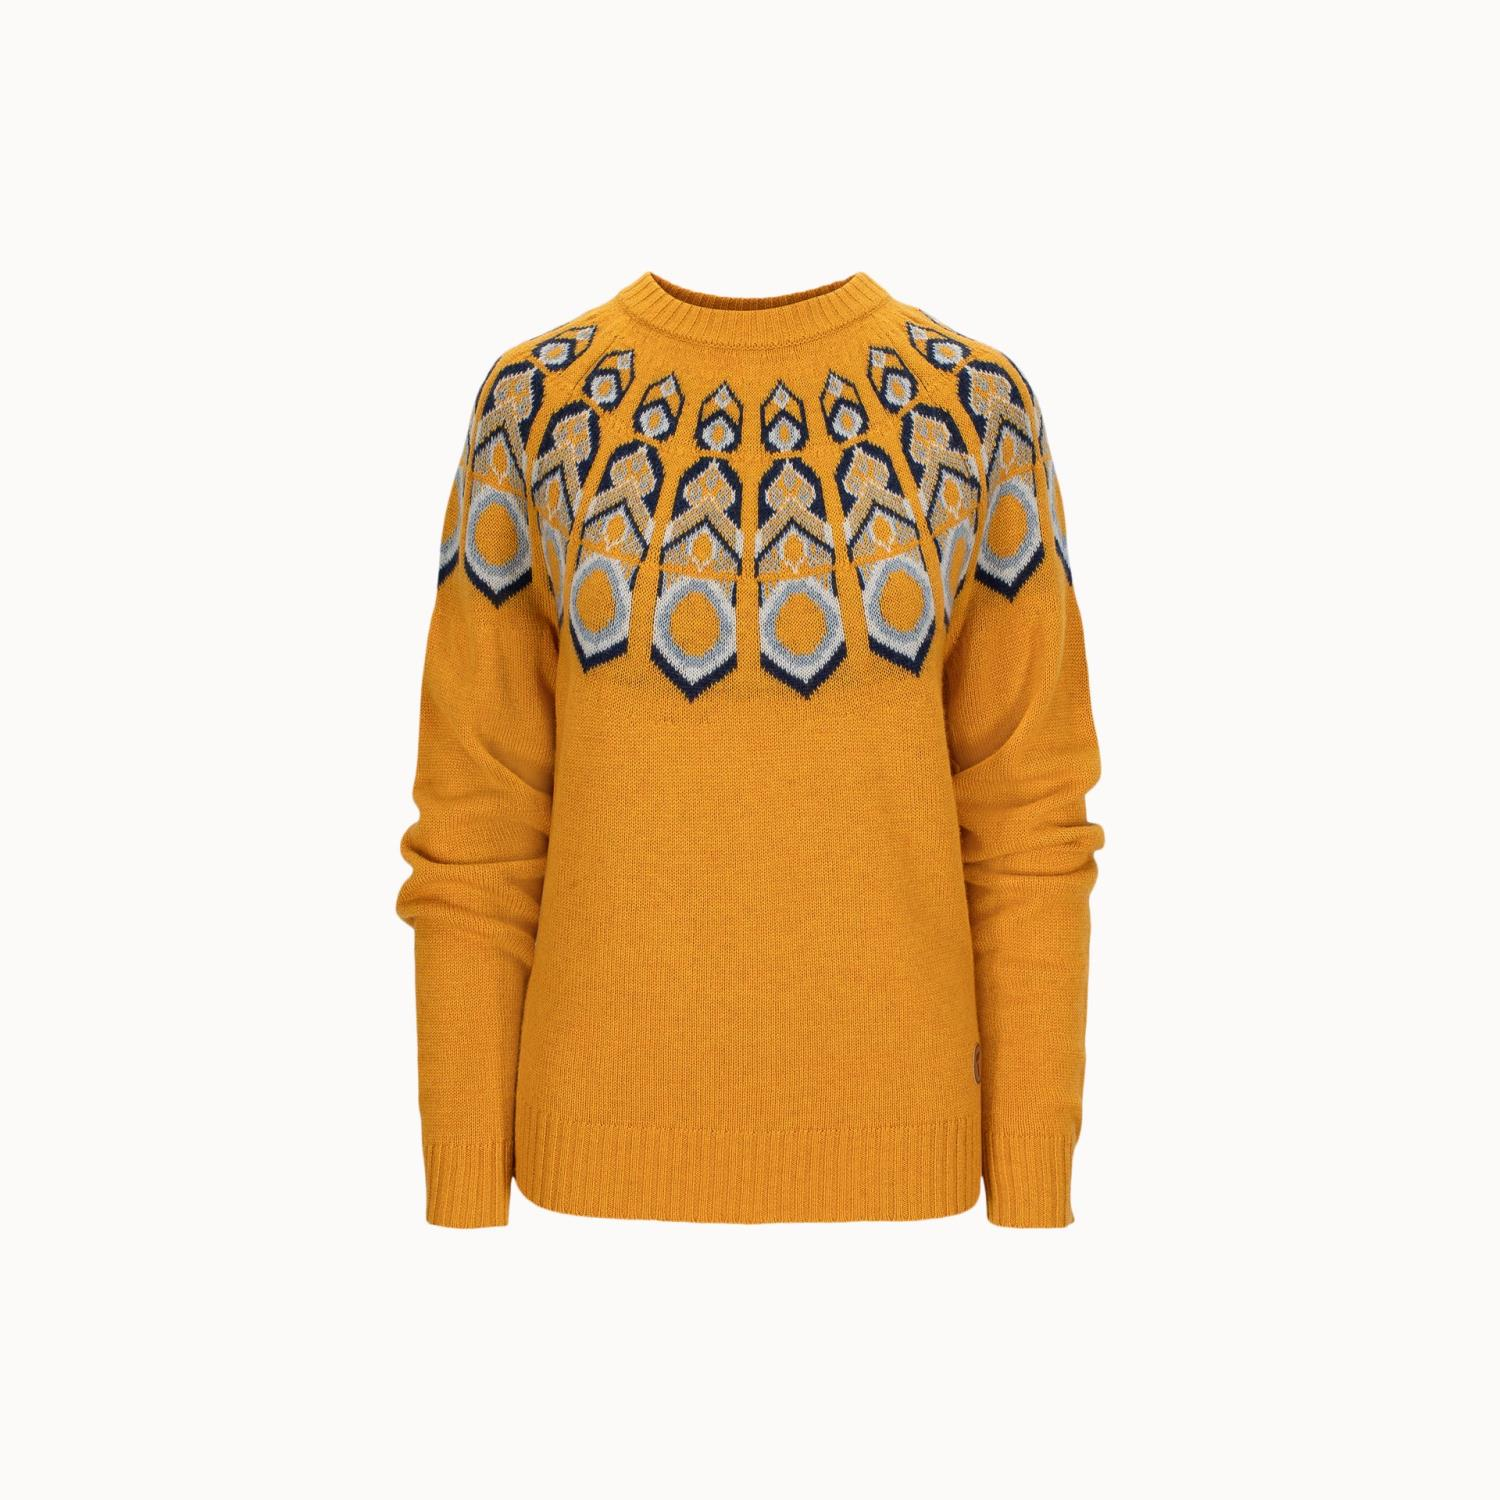 Tufte Wear  Womens Rosenfink Pattern Sweater